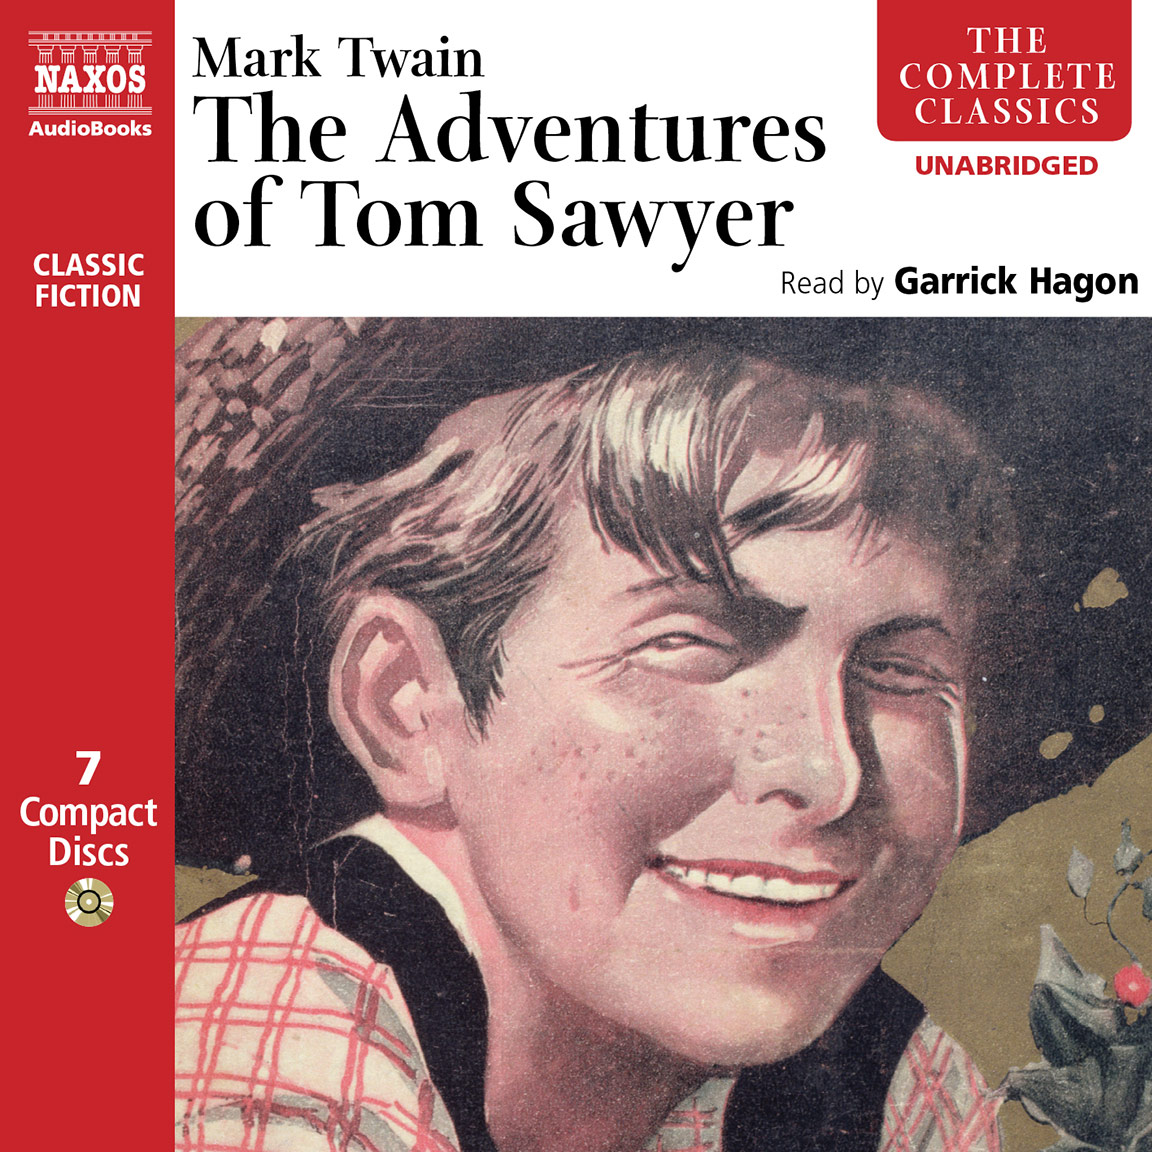 a description of tom sawyer who lives with his aunt polly Adventures of huckleberry finn by mark although she's around a lot more in the adventures of tom sawyer, aunt polly shows us that she's one sharp lady in her.